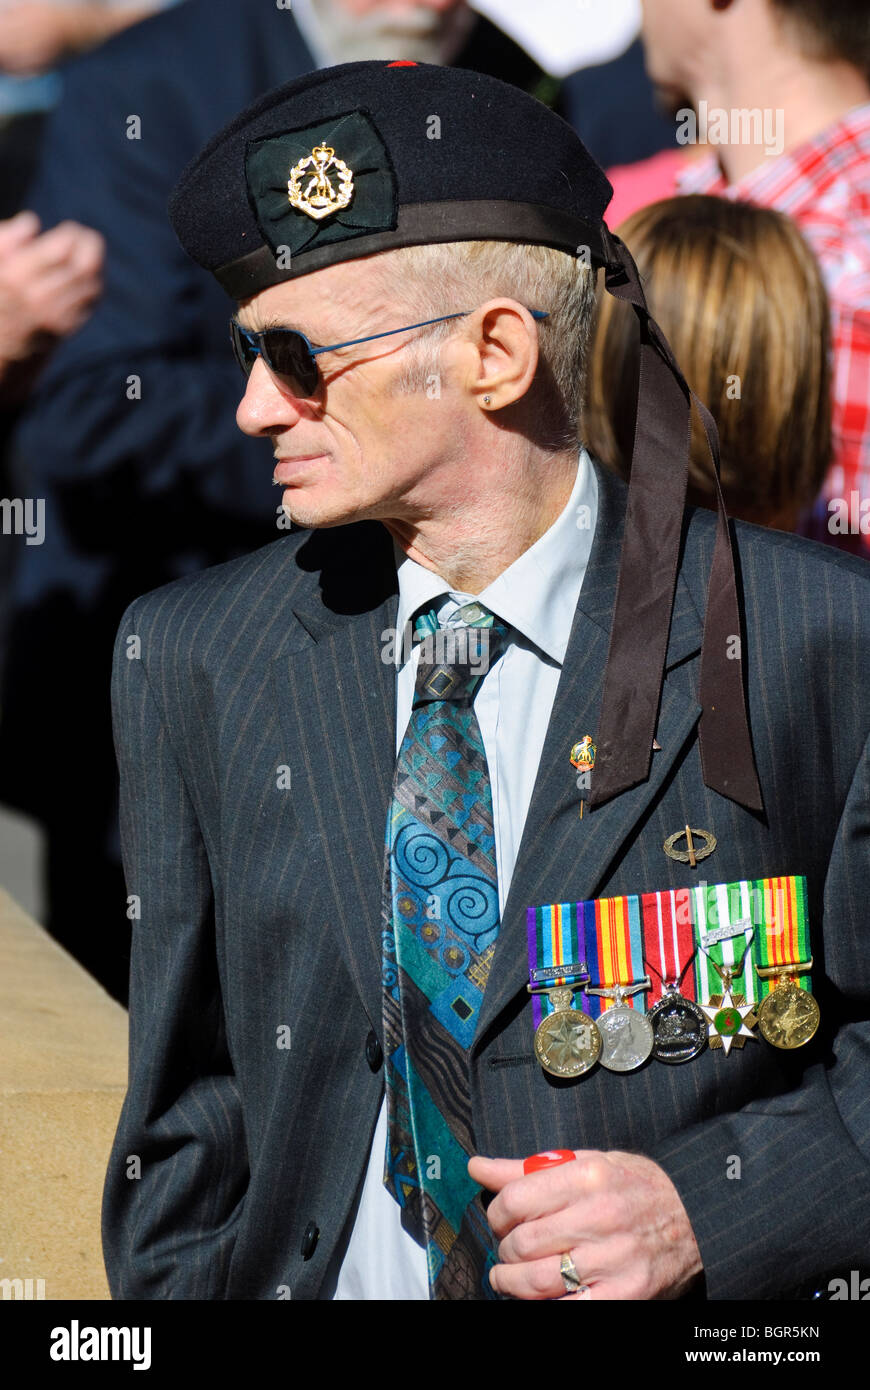 Military veteran, proudly wearing his medals. - Stock Image